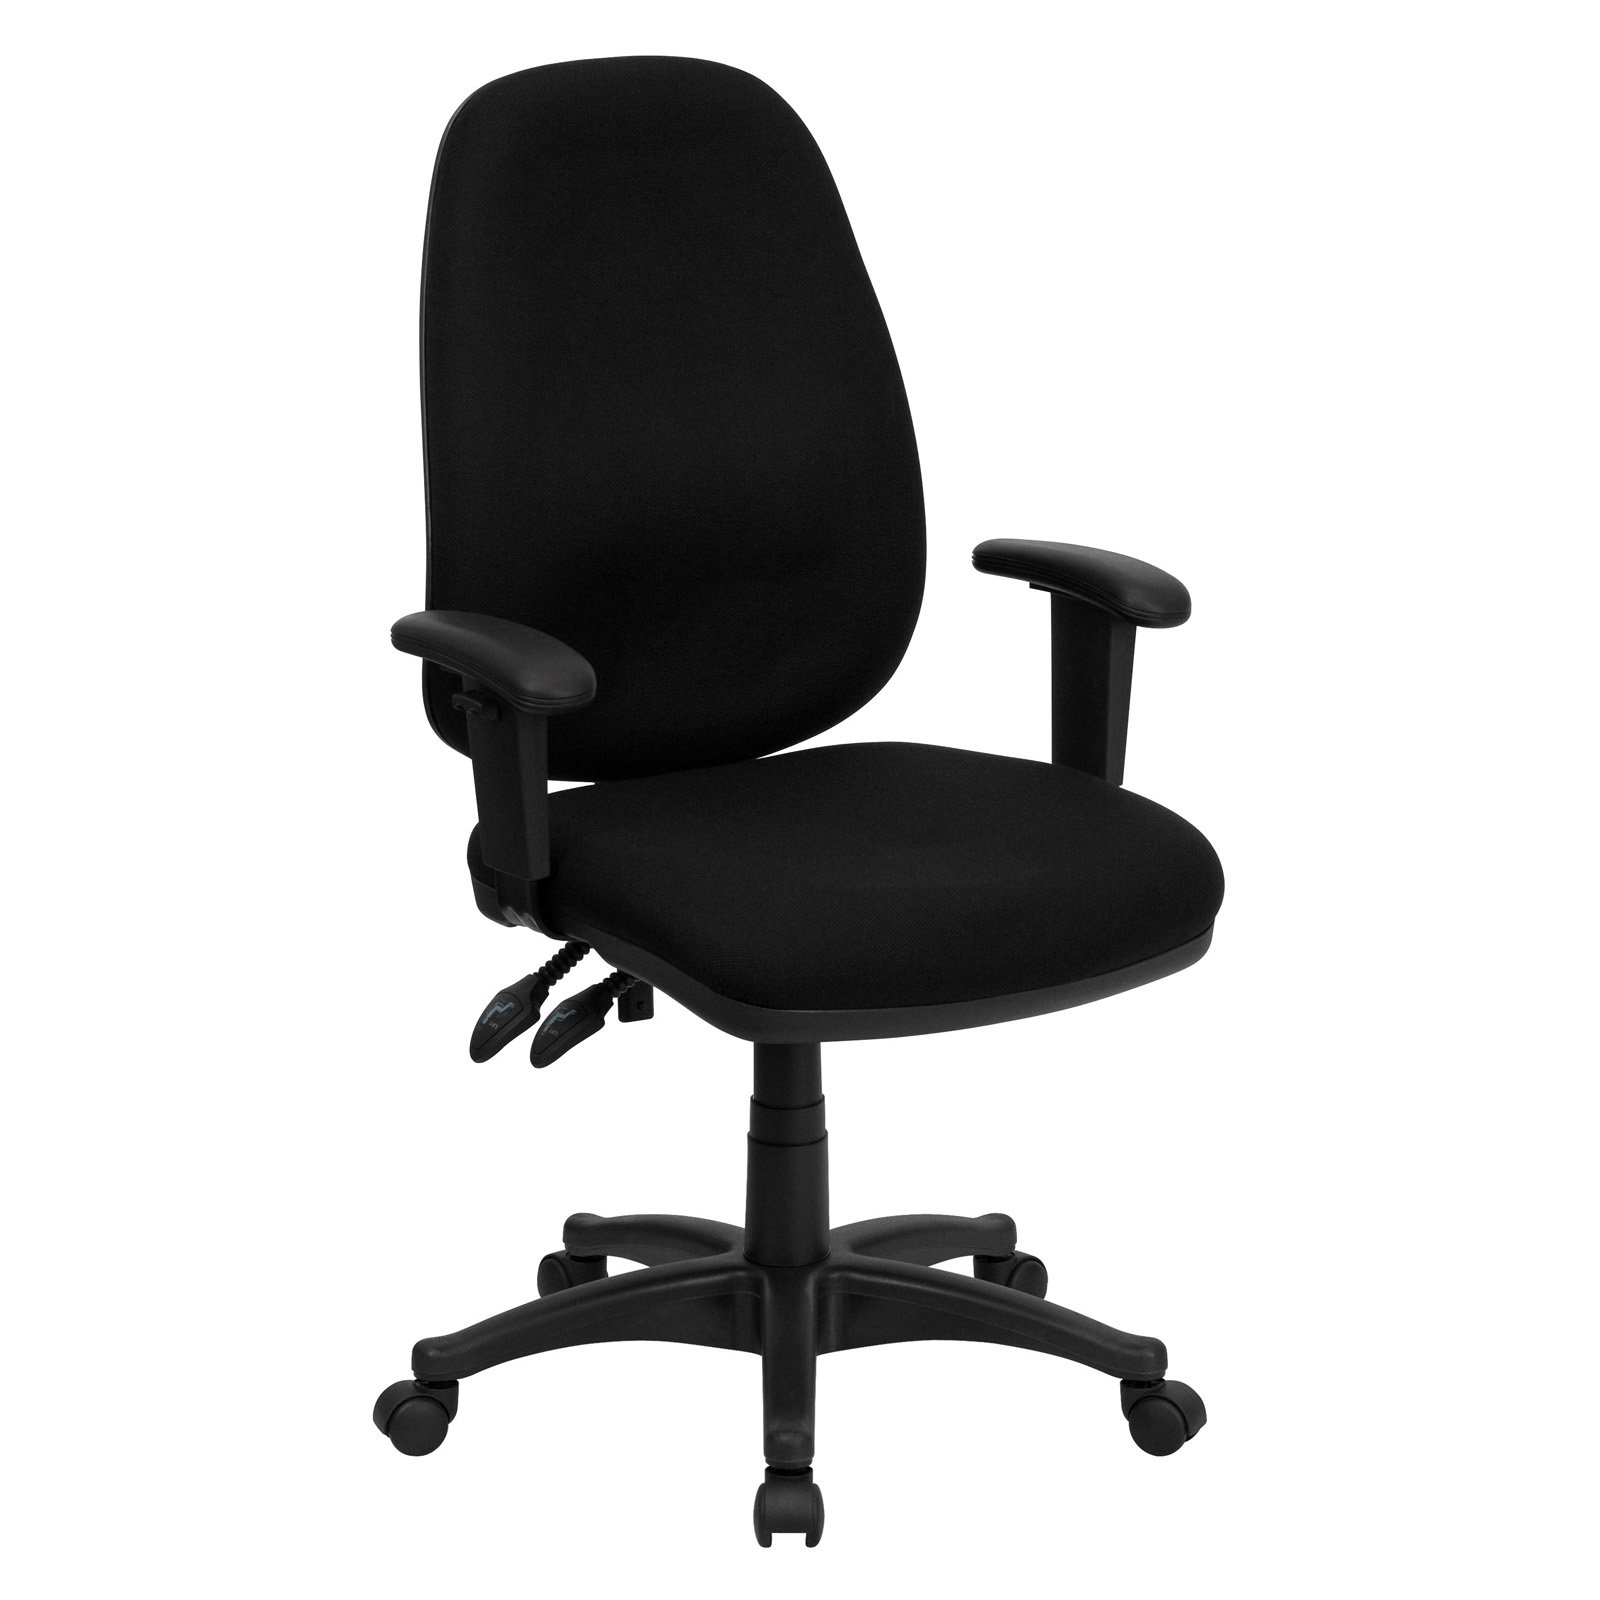 Ergonomic Computer Office Chair With Height Adjule Arms Multiple Colors